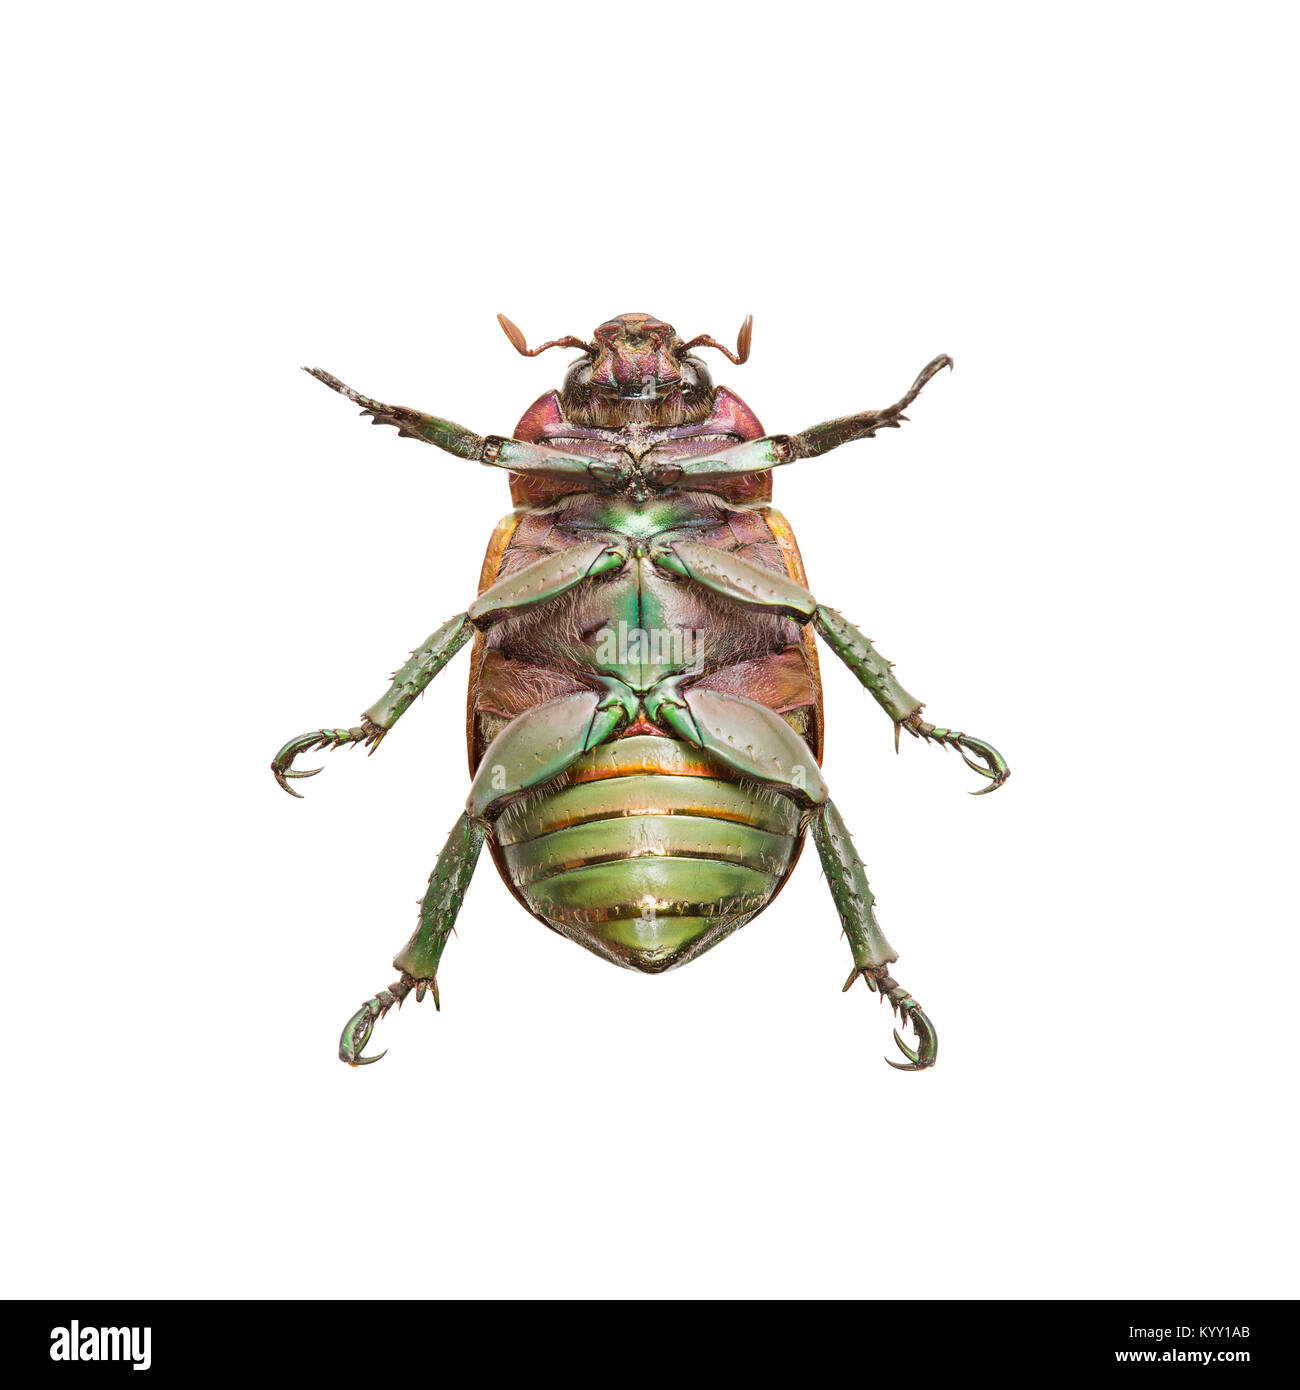 Close-up of upside down beetle over white background - Stock Image